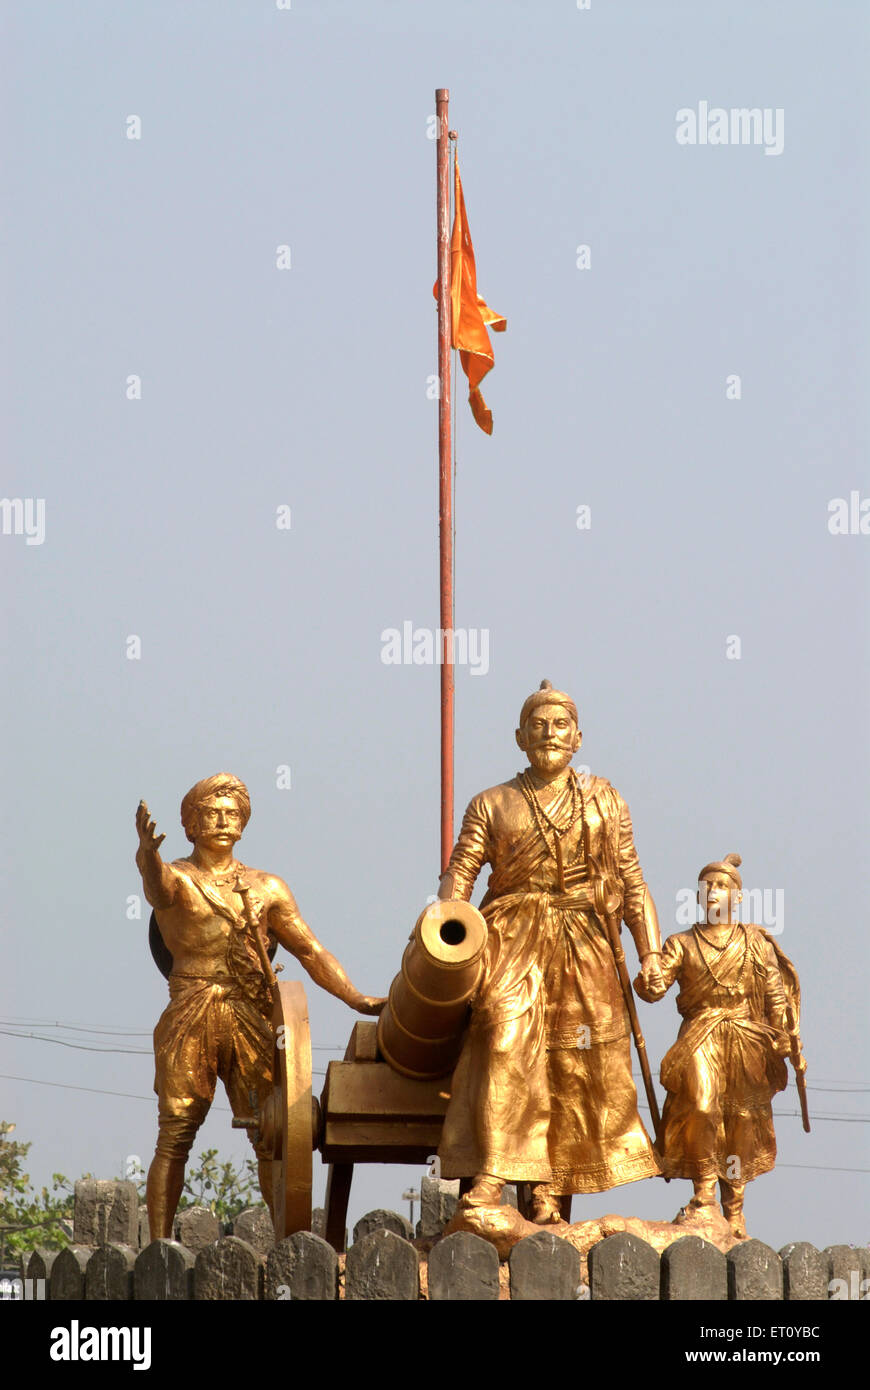 Statue of Chhatrapati Shivaji maharaja with Sambhaji Admiral and cannon ; Bombay Mumbai ; Maharashtra ; India 2009 - Stock Image